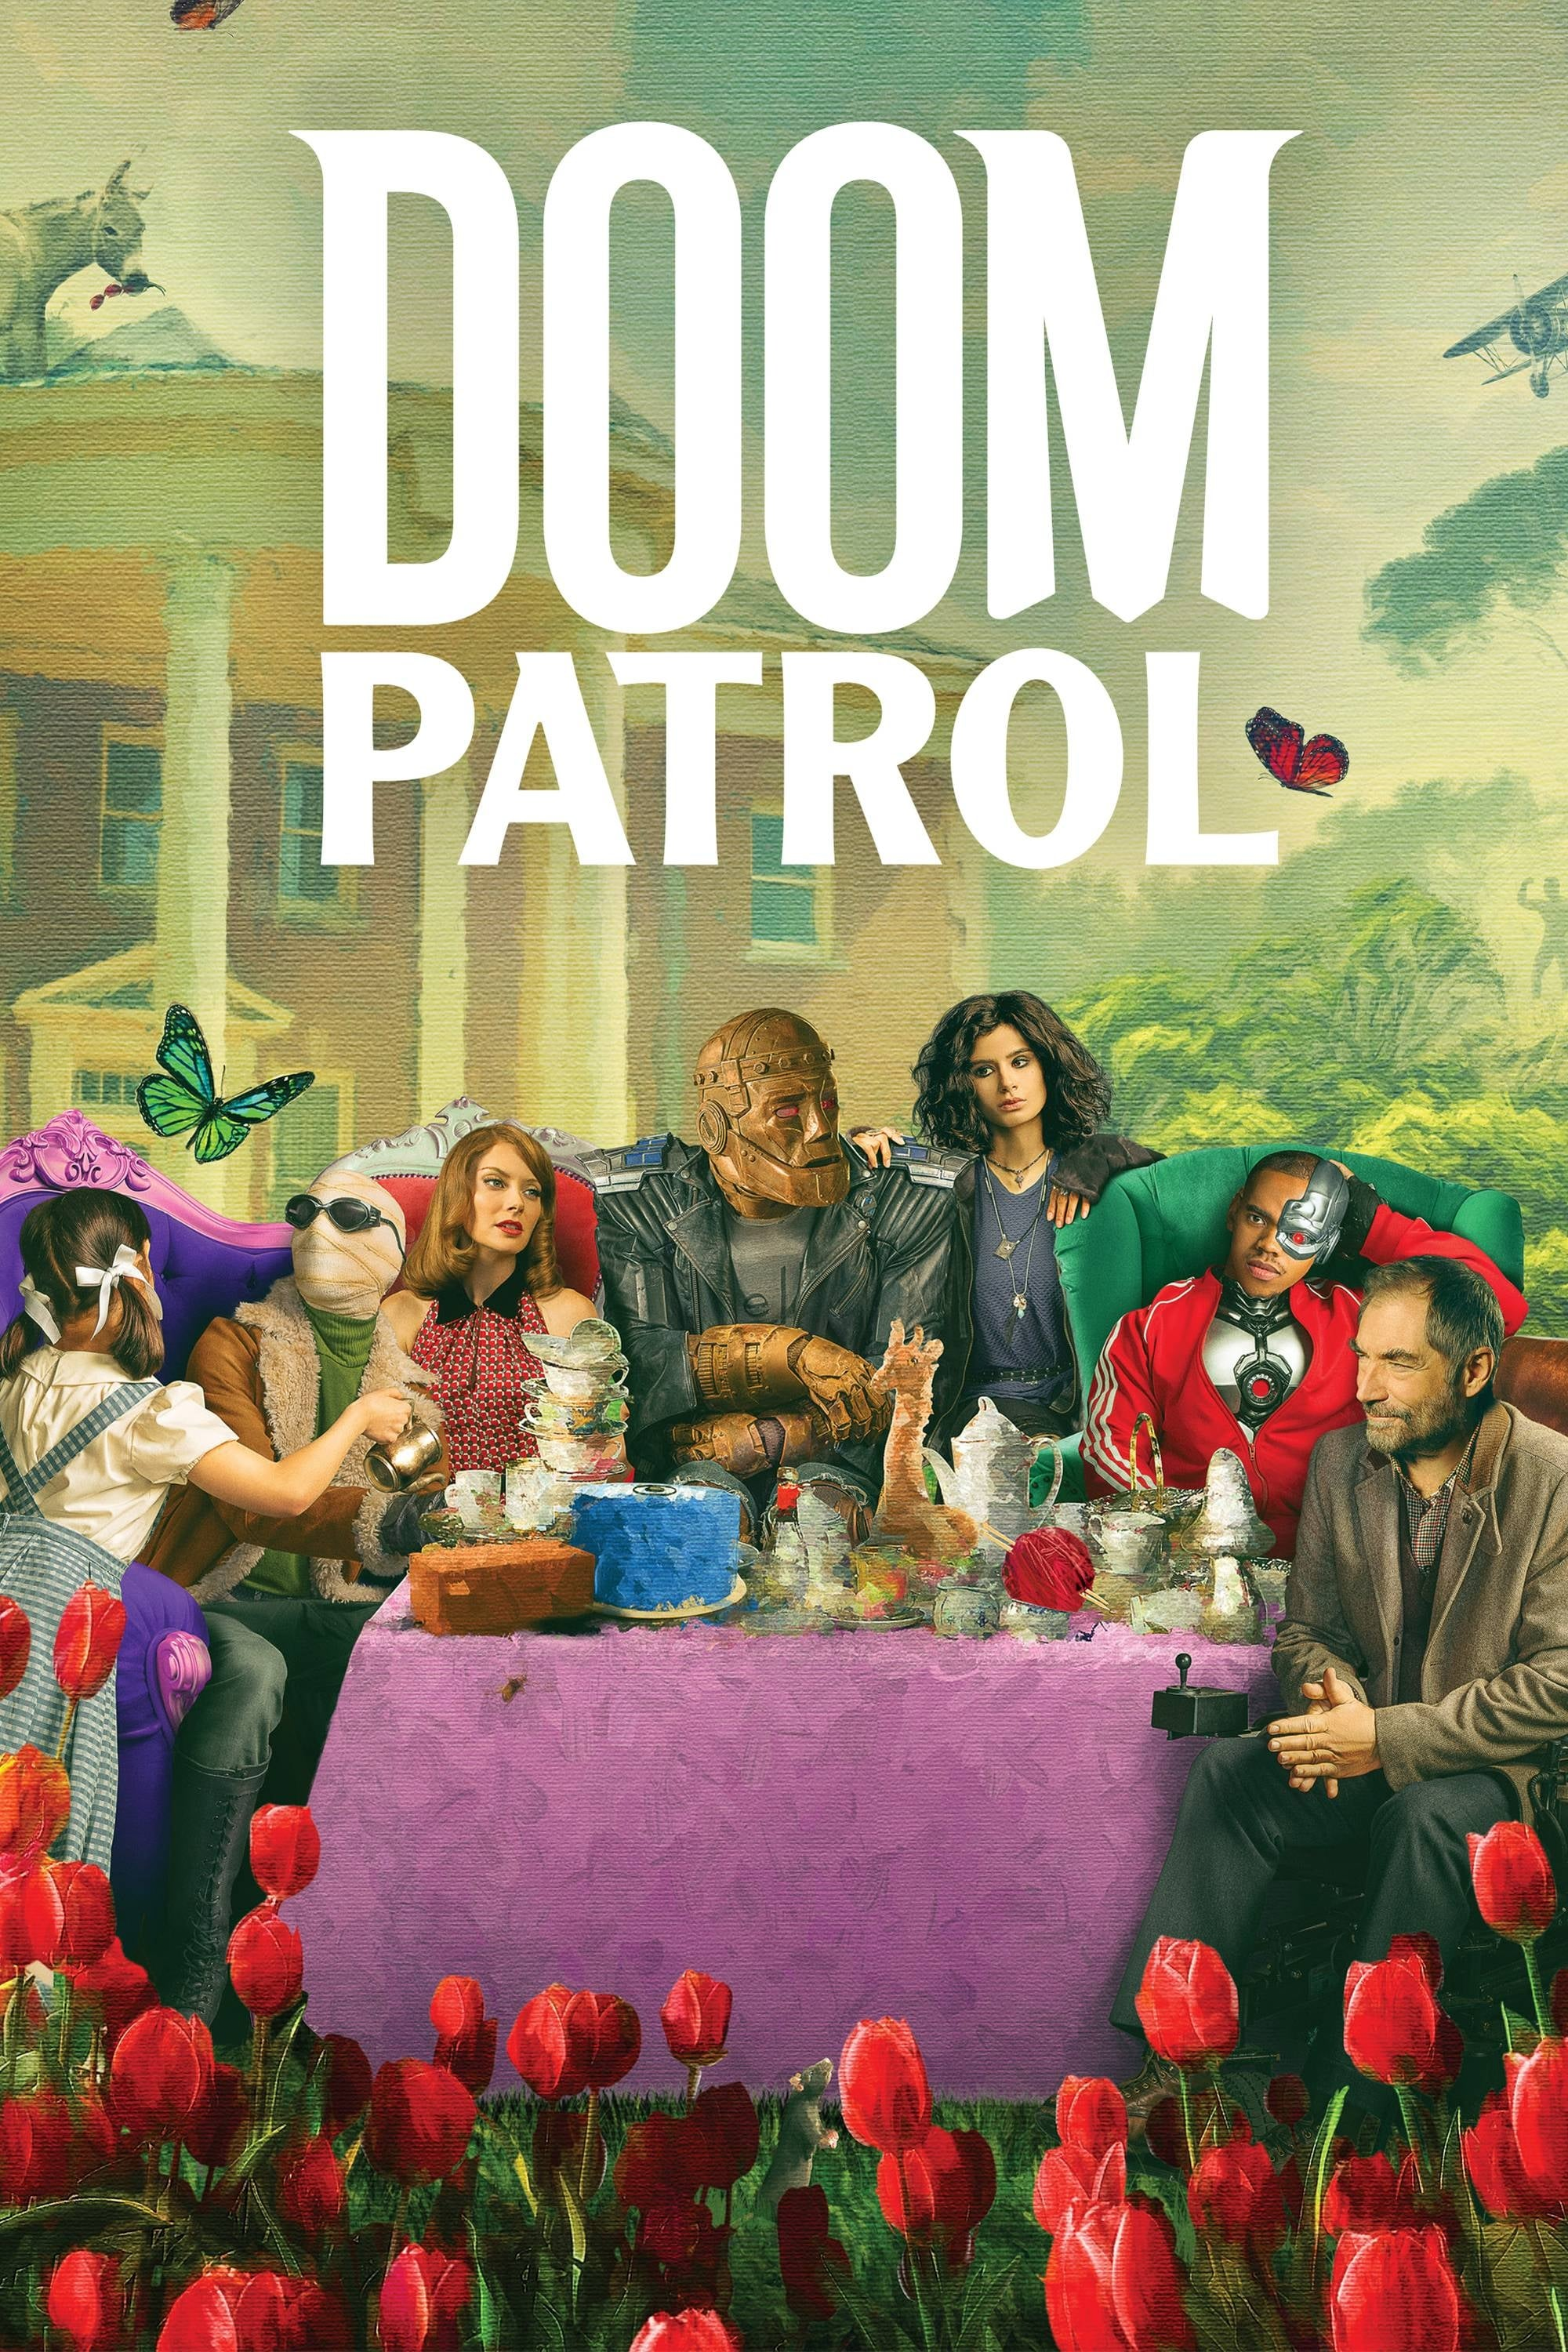 Doom Patrol S2 (2020) Subtitle Indonesia